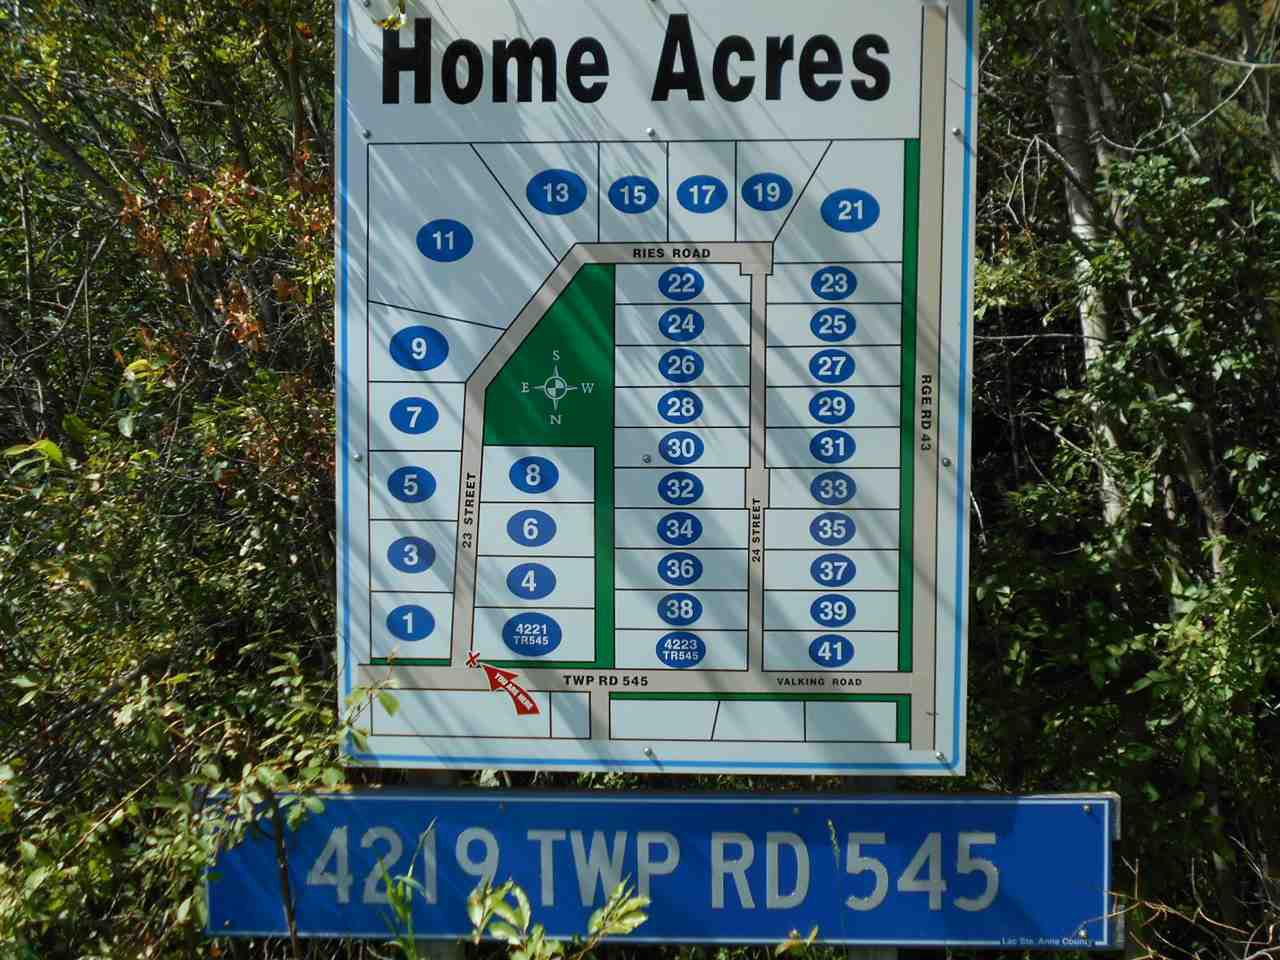 Main Photo: 36-4219 TWP 545: Rural Lac Ste. Anne County Rural Land/Vacant Lot for sale : MLS®# E4167020